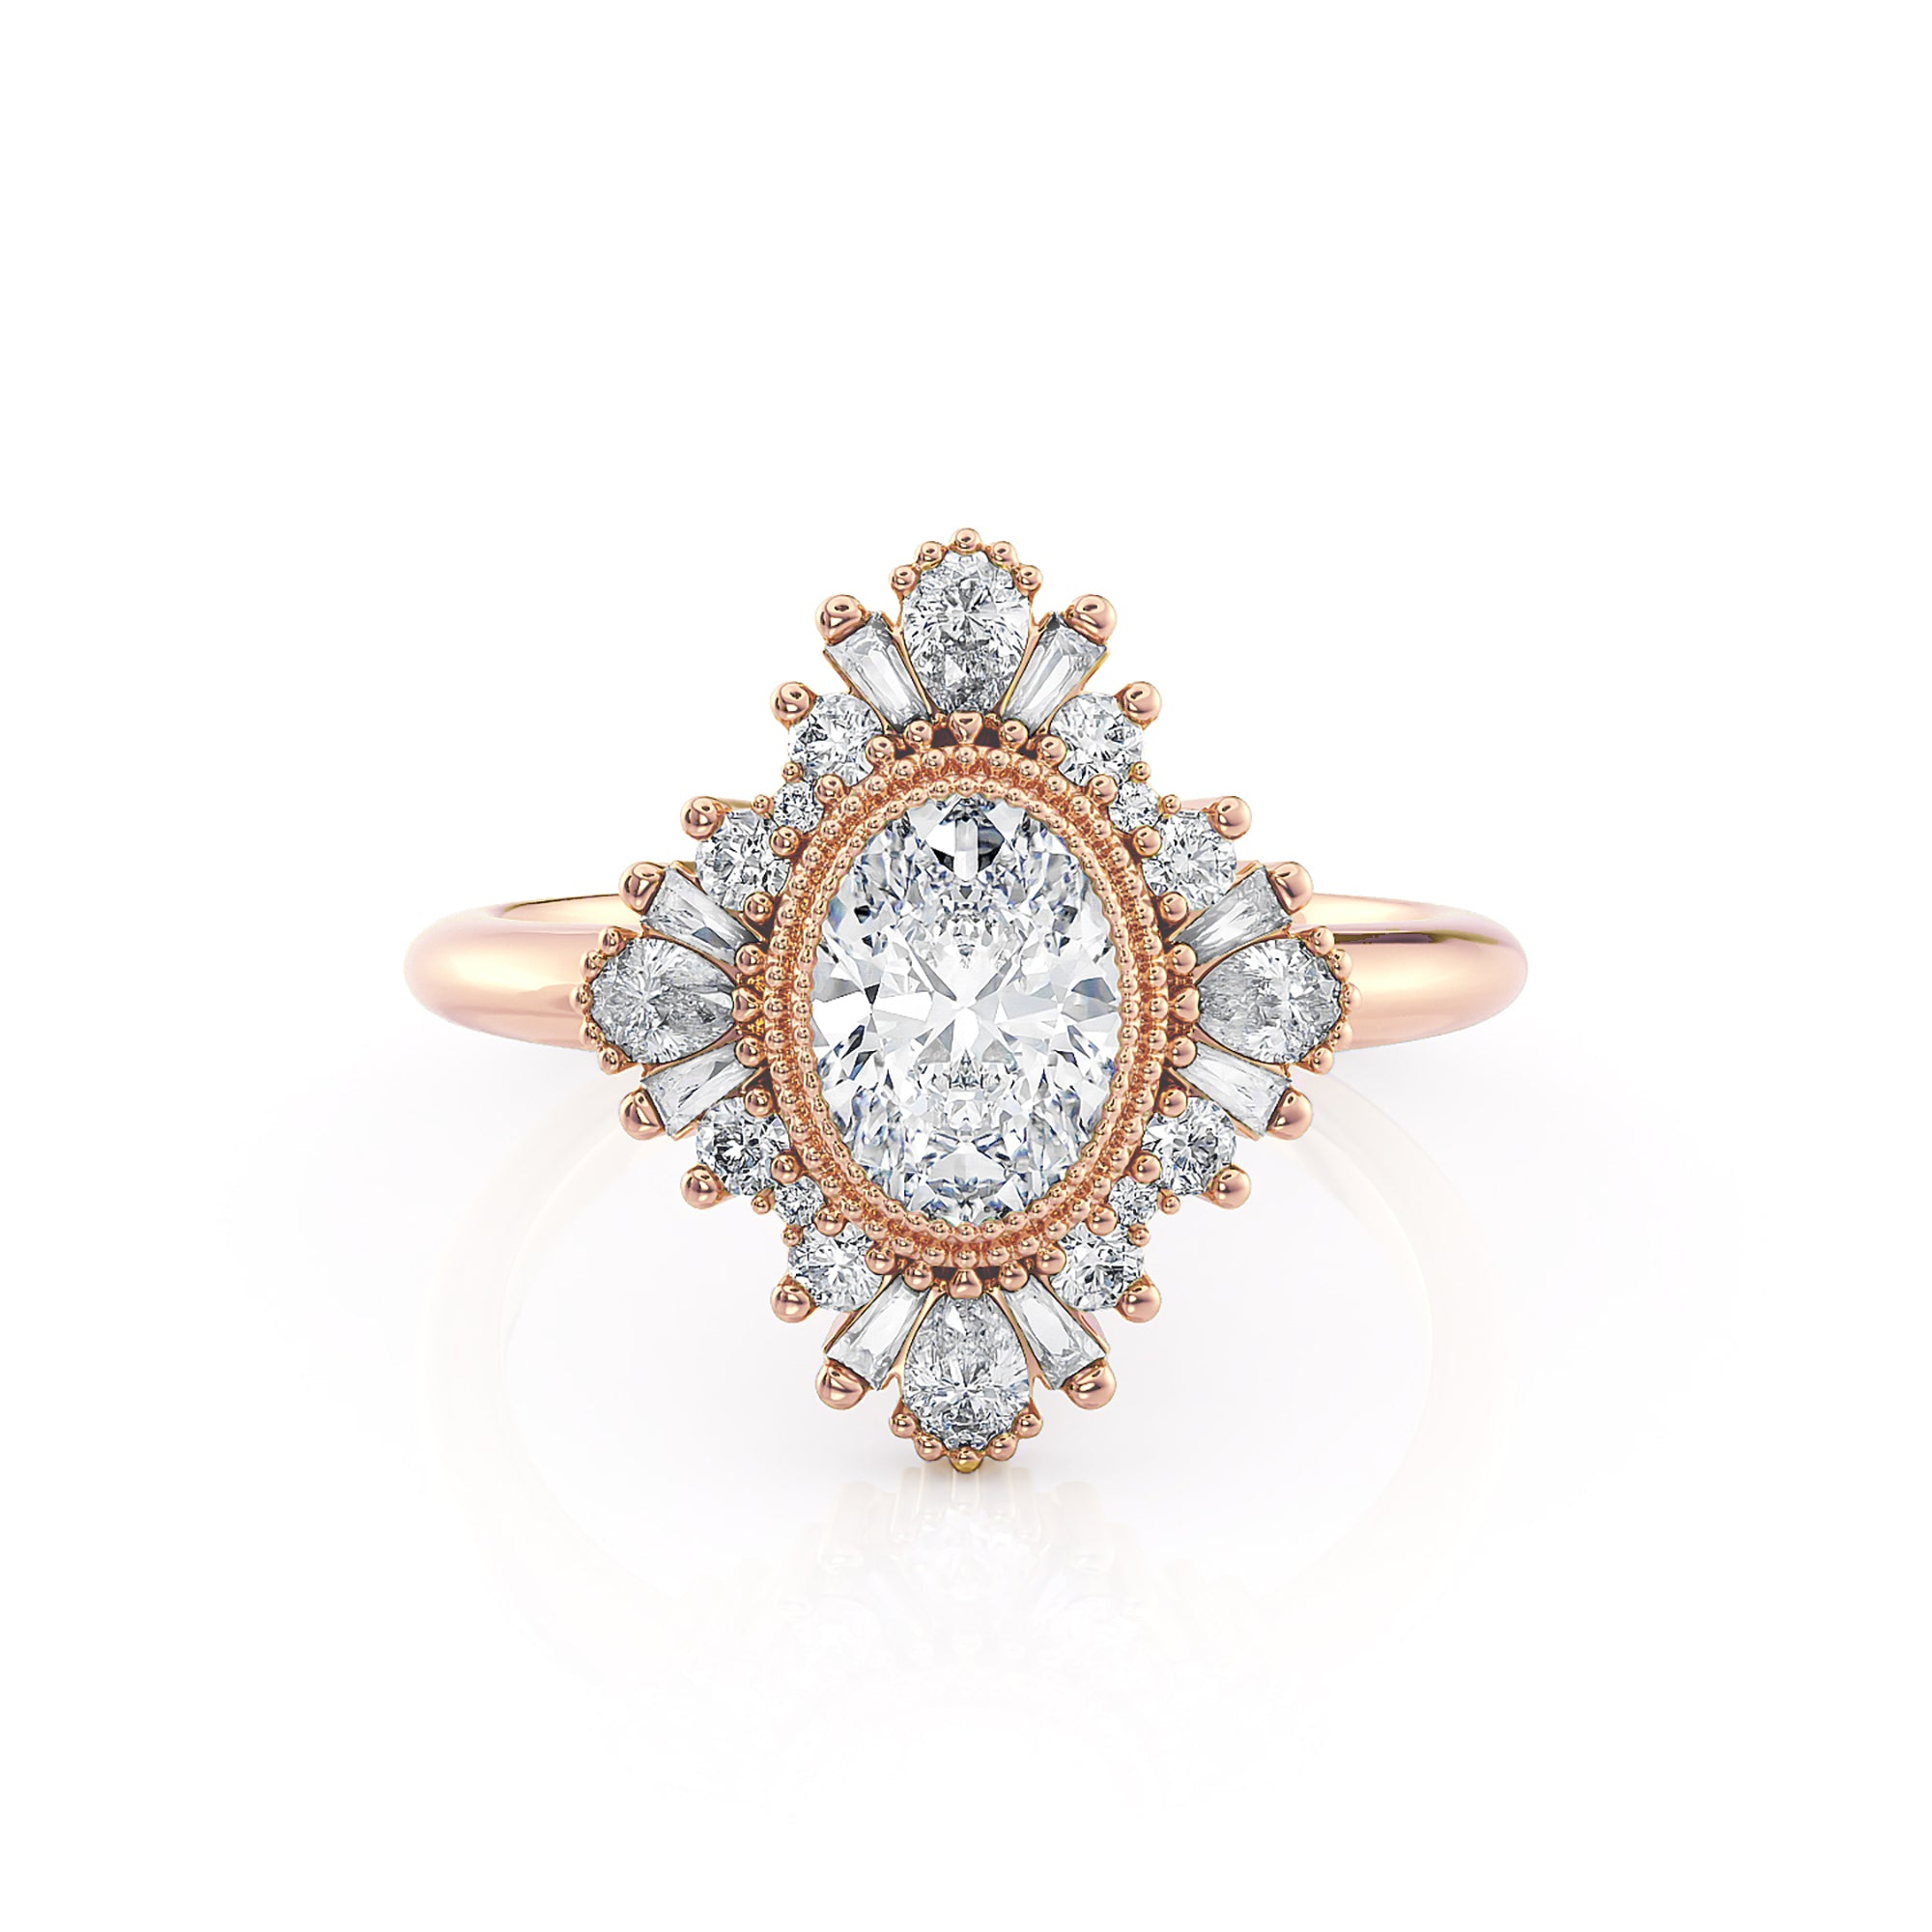 Victoria | Oval Diamond Art Deco Ballerina Ring | Rose Gold